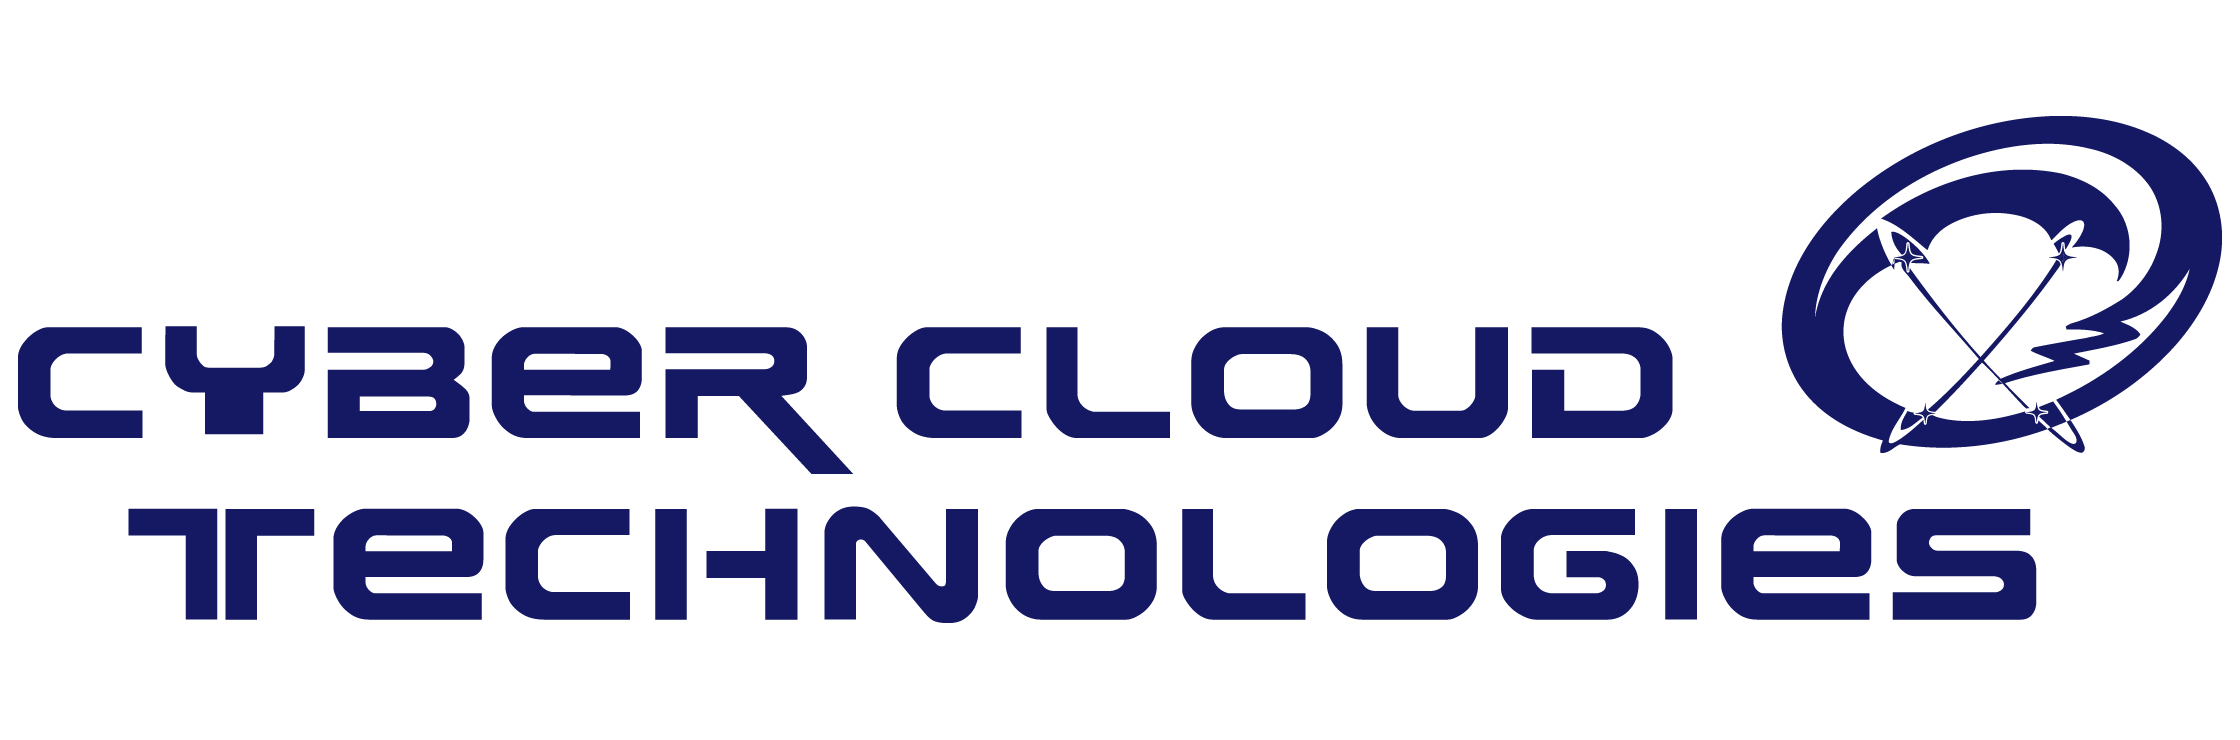 Cyber Cloud Technologies LLC